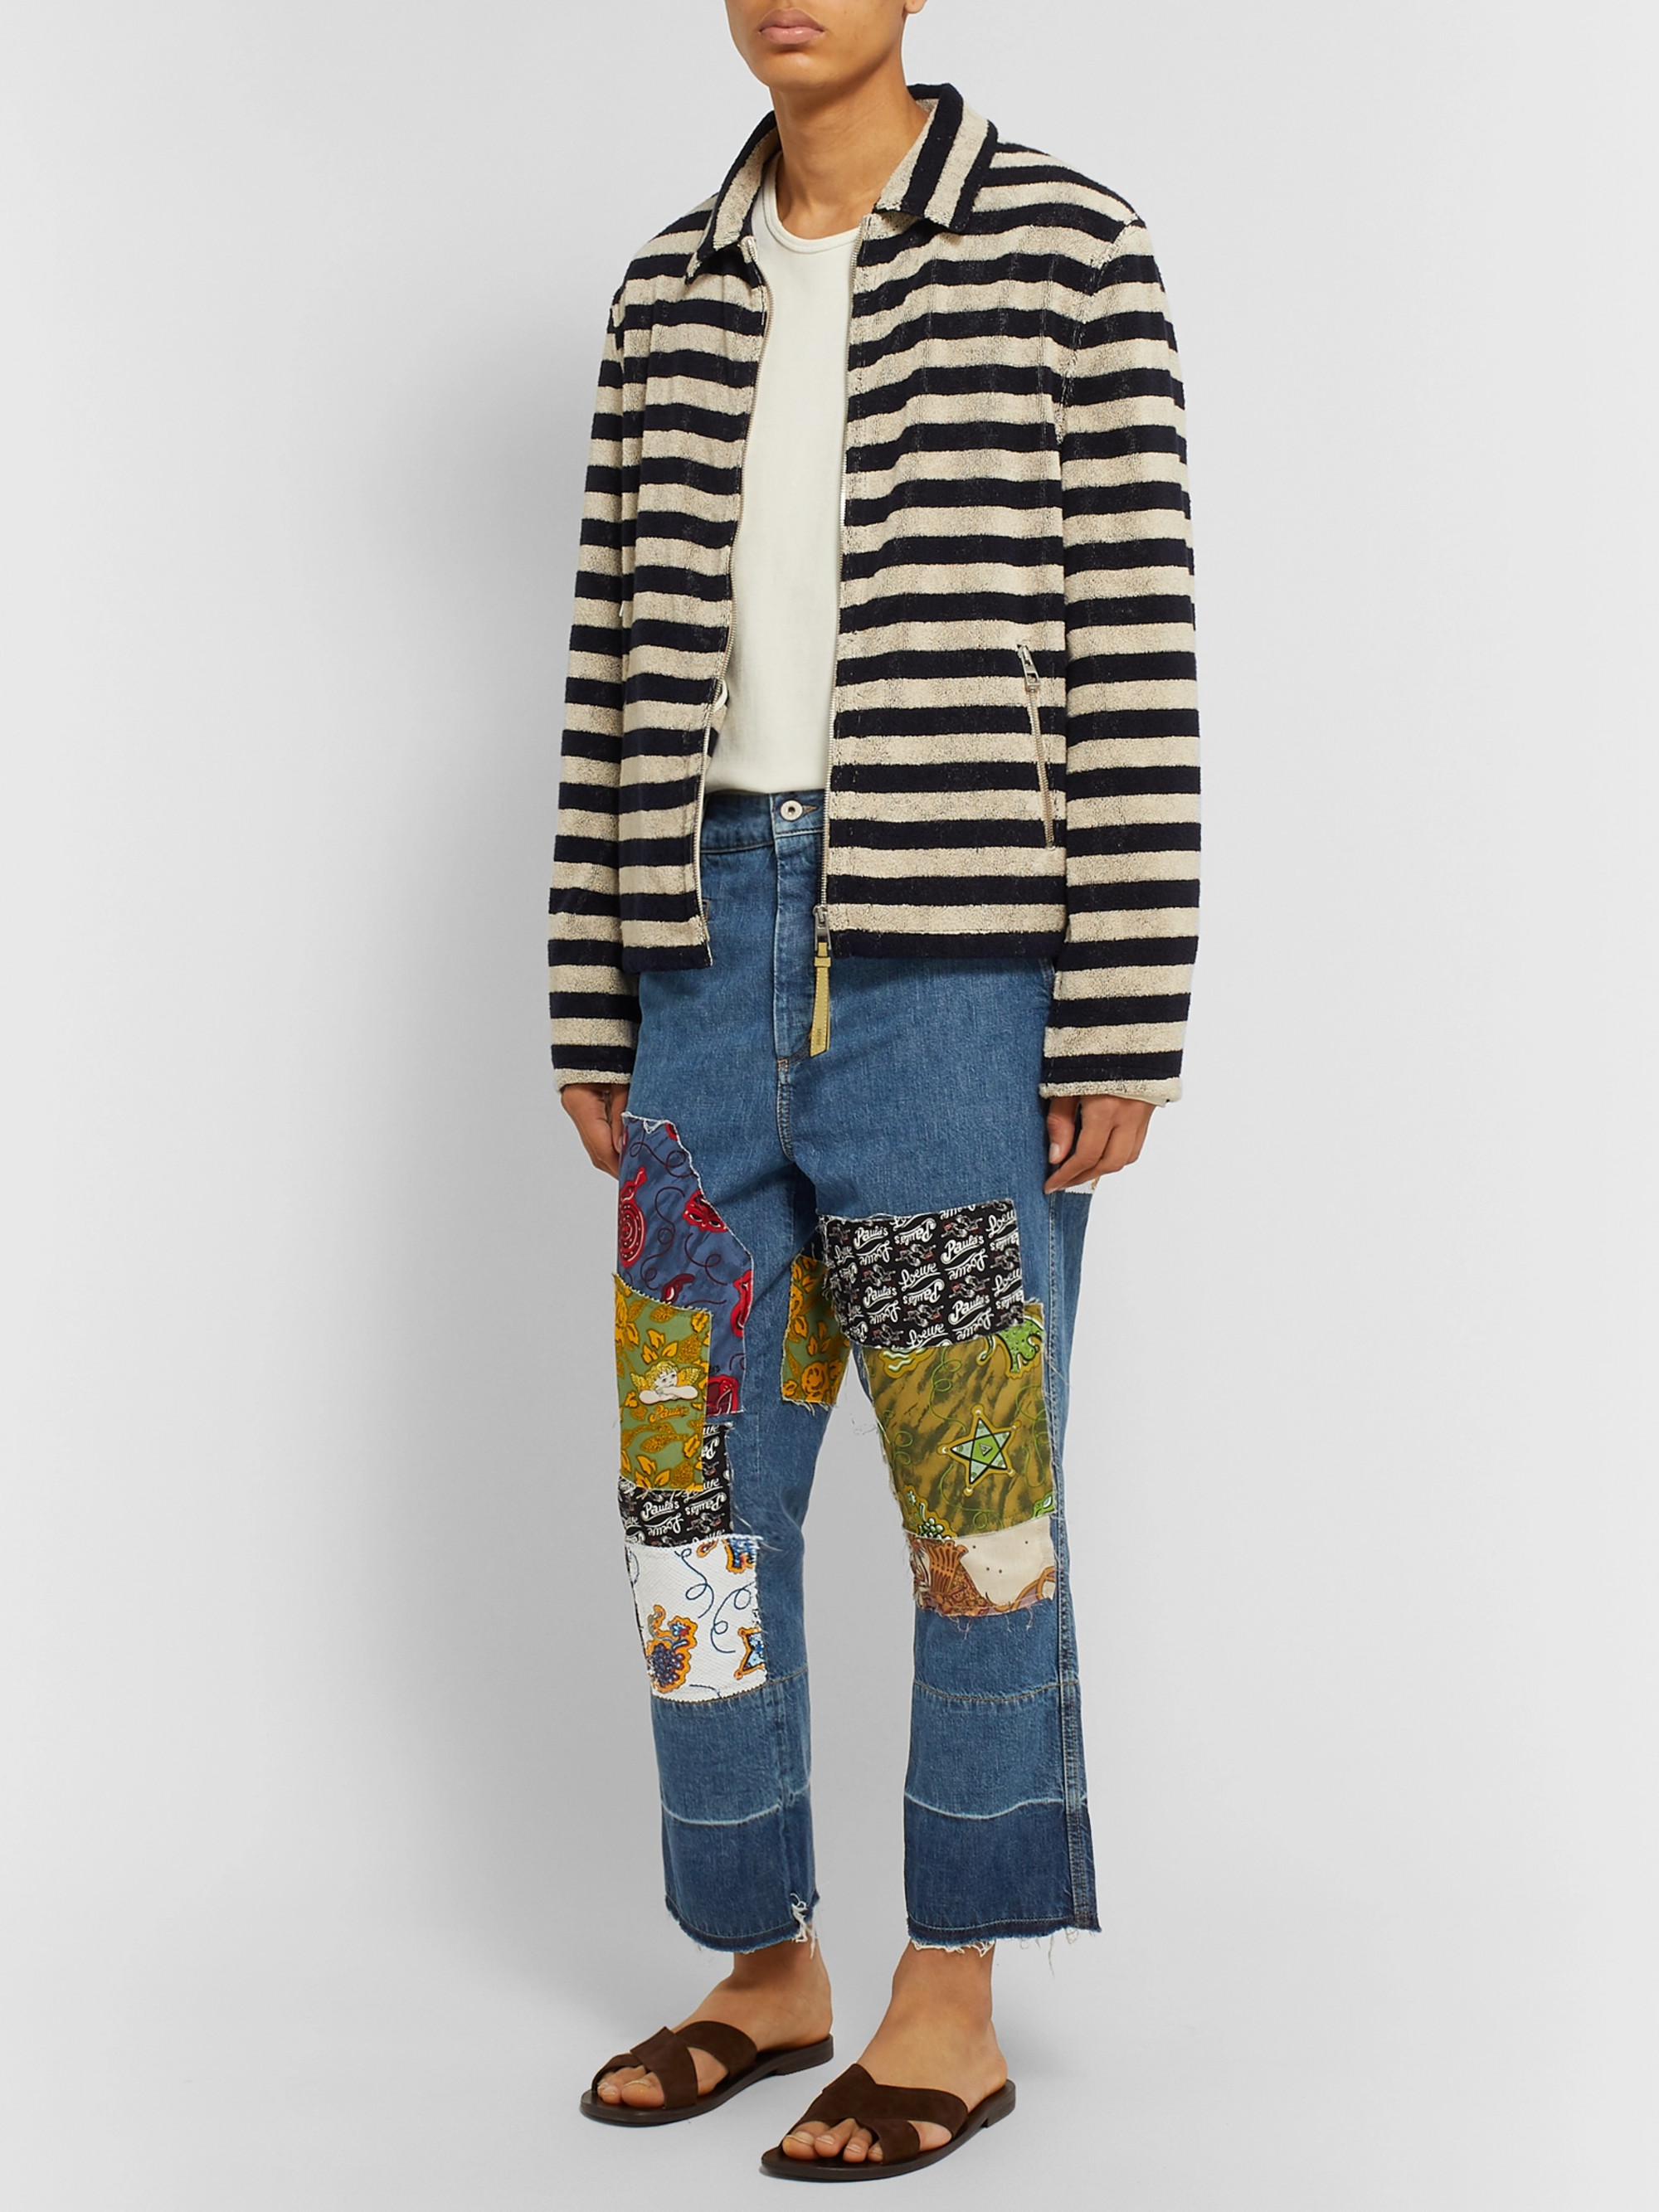 Loewe + Paula's Ibiza Fisherman Wide-Leg Cropped Patchwork Denim Jeans